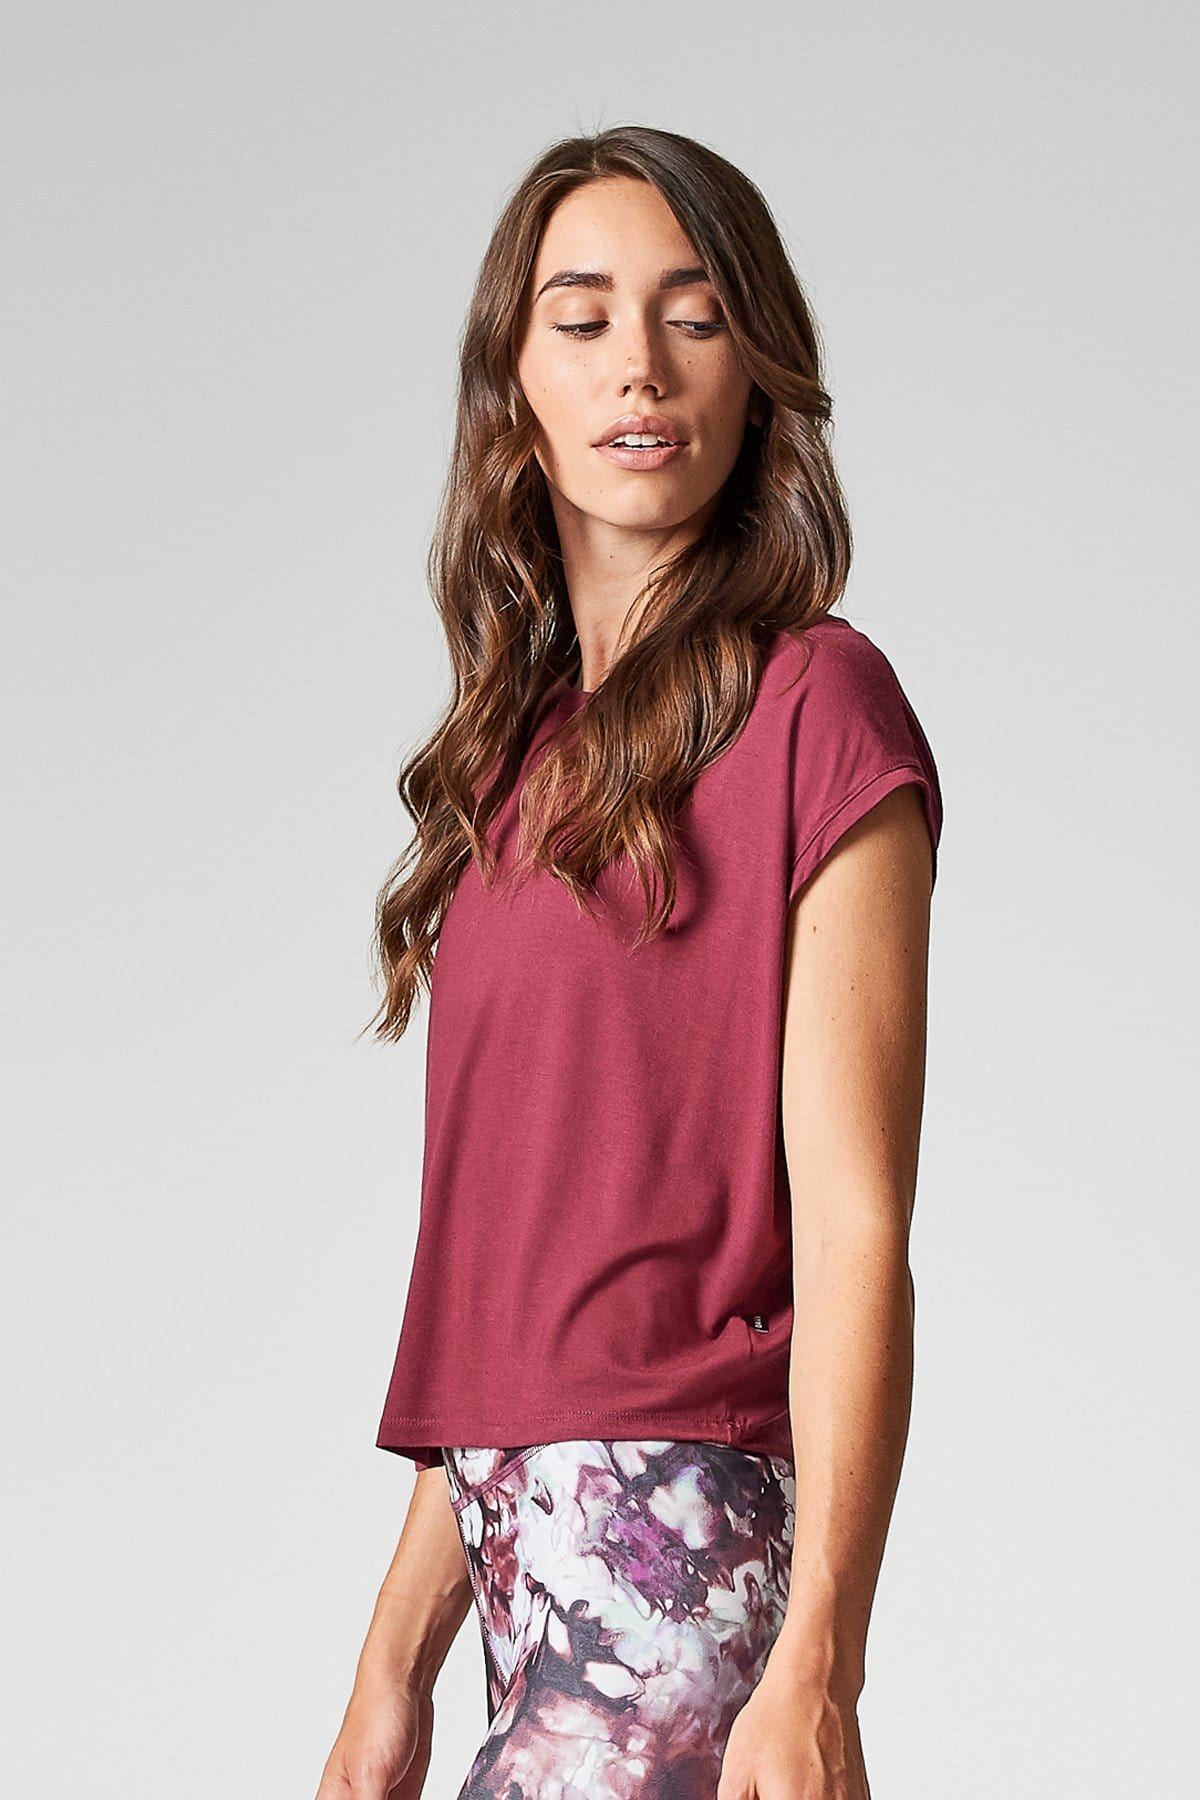 A brunette woman wears a burgundy colored box tee shirt and tie-dyed leggings